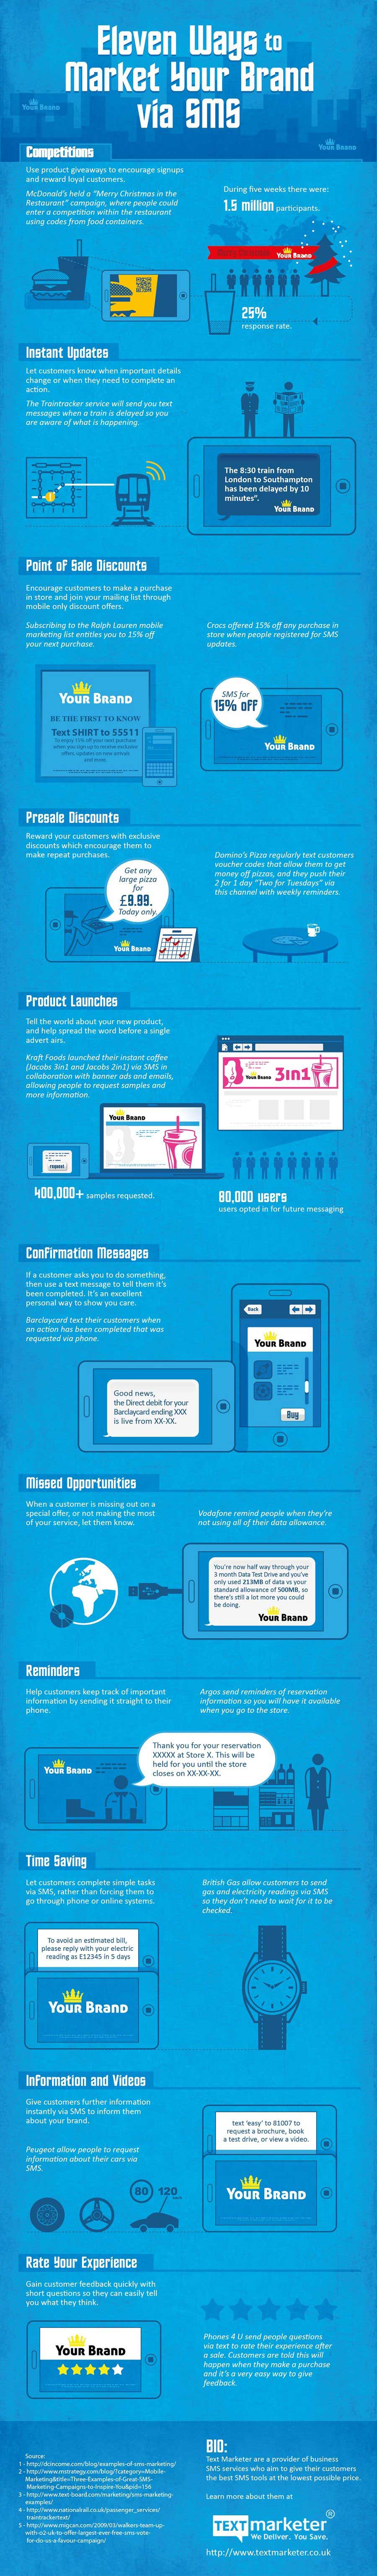 11 Ways to Market Your Brand via SMS [Infographic]